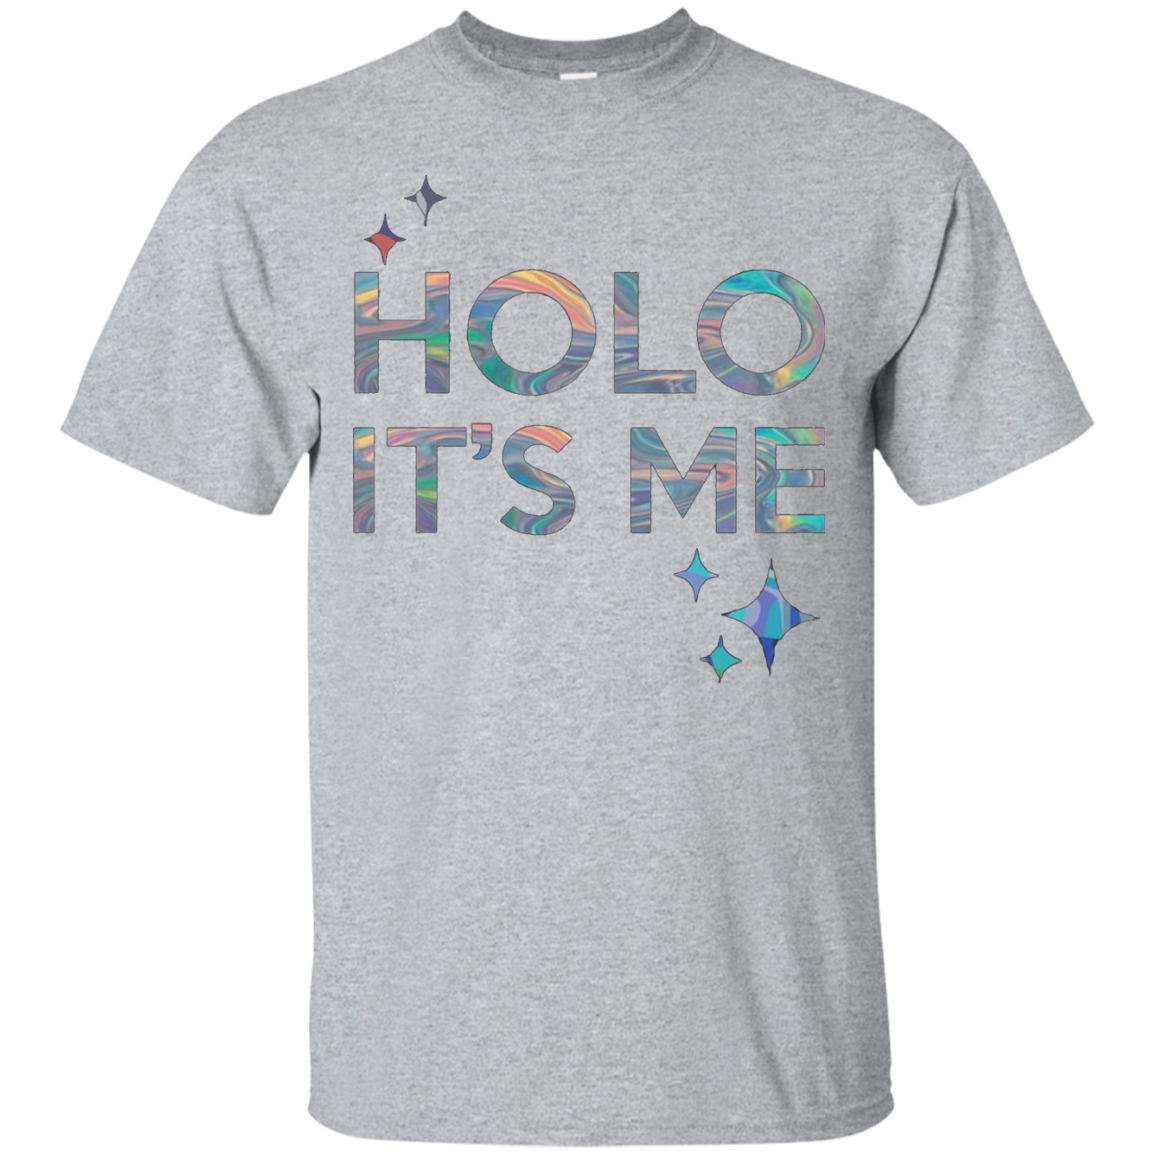 Men's Holo It's Me TShirt - T-Shirt